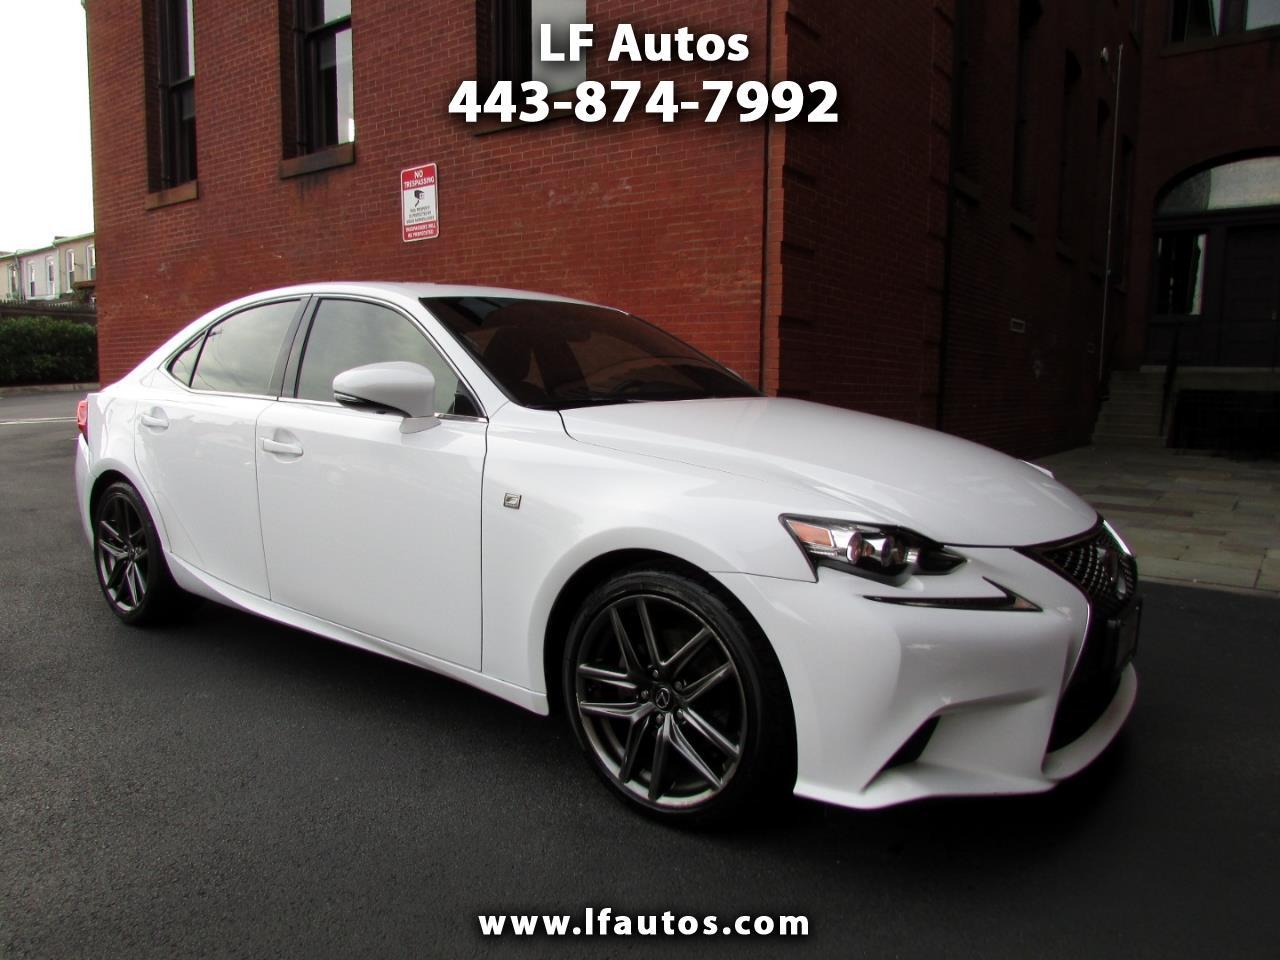 2014 Lexus IS 250 F-Sport AWD Auto